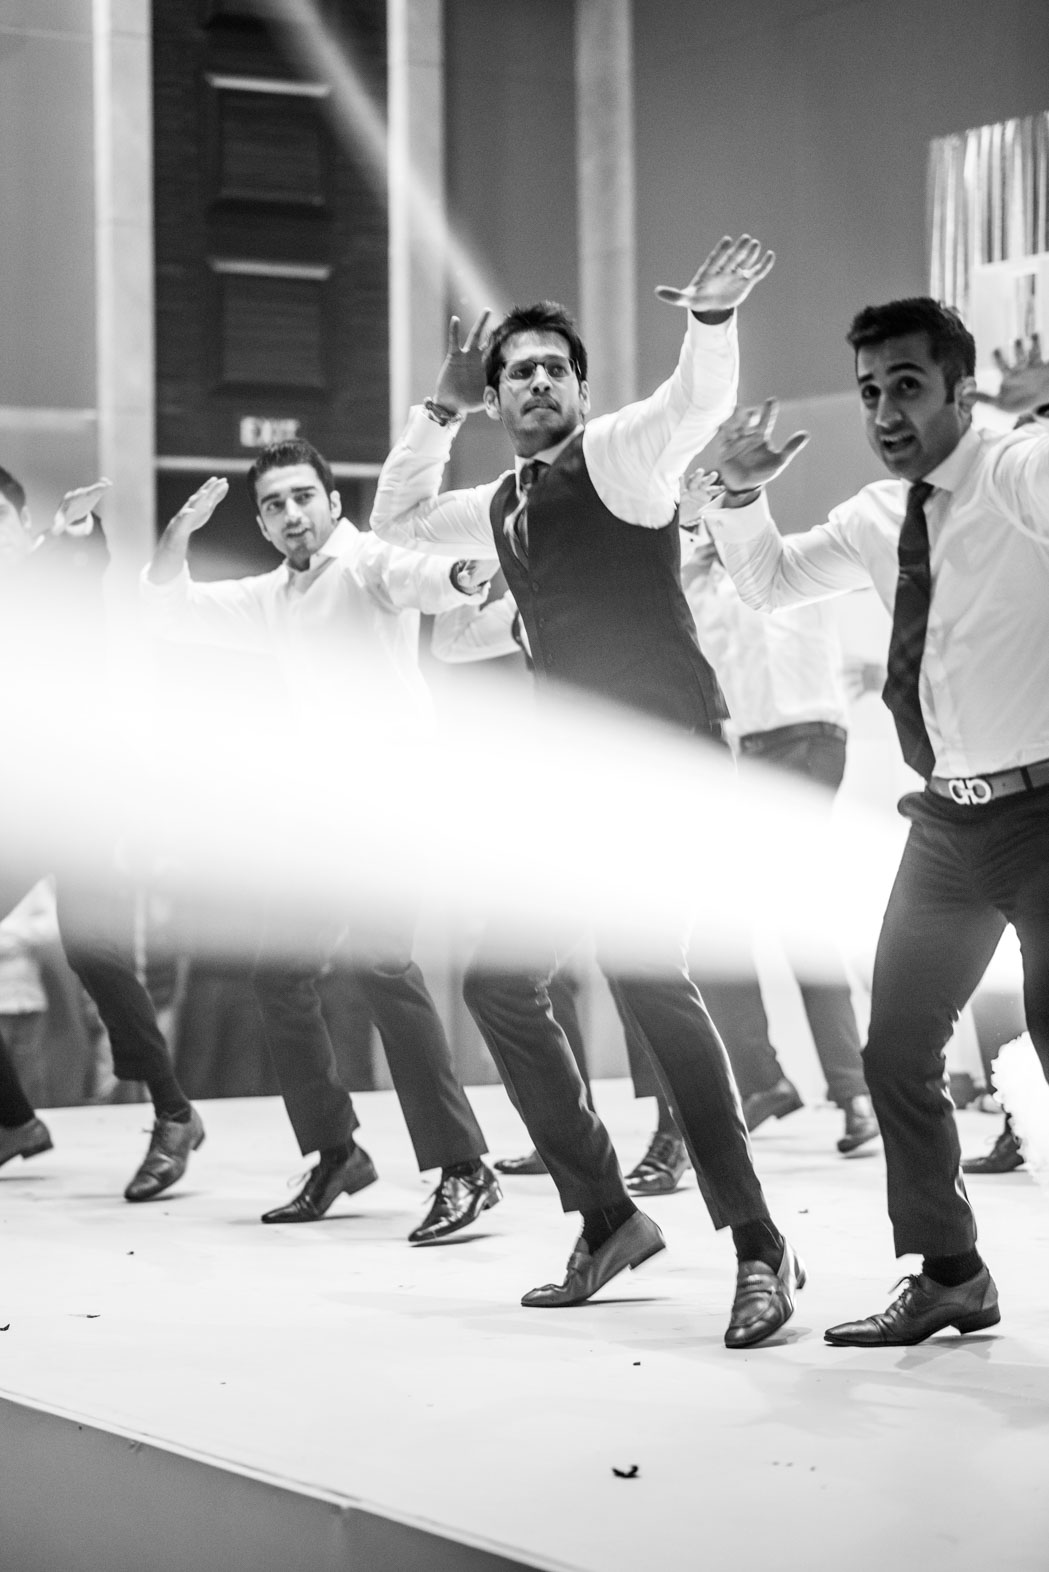 StRegis-Palladium-Mumbai-Candid-Wedding-Photography-76